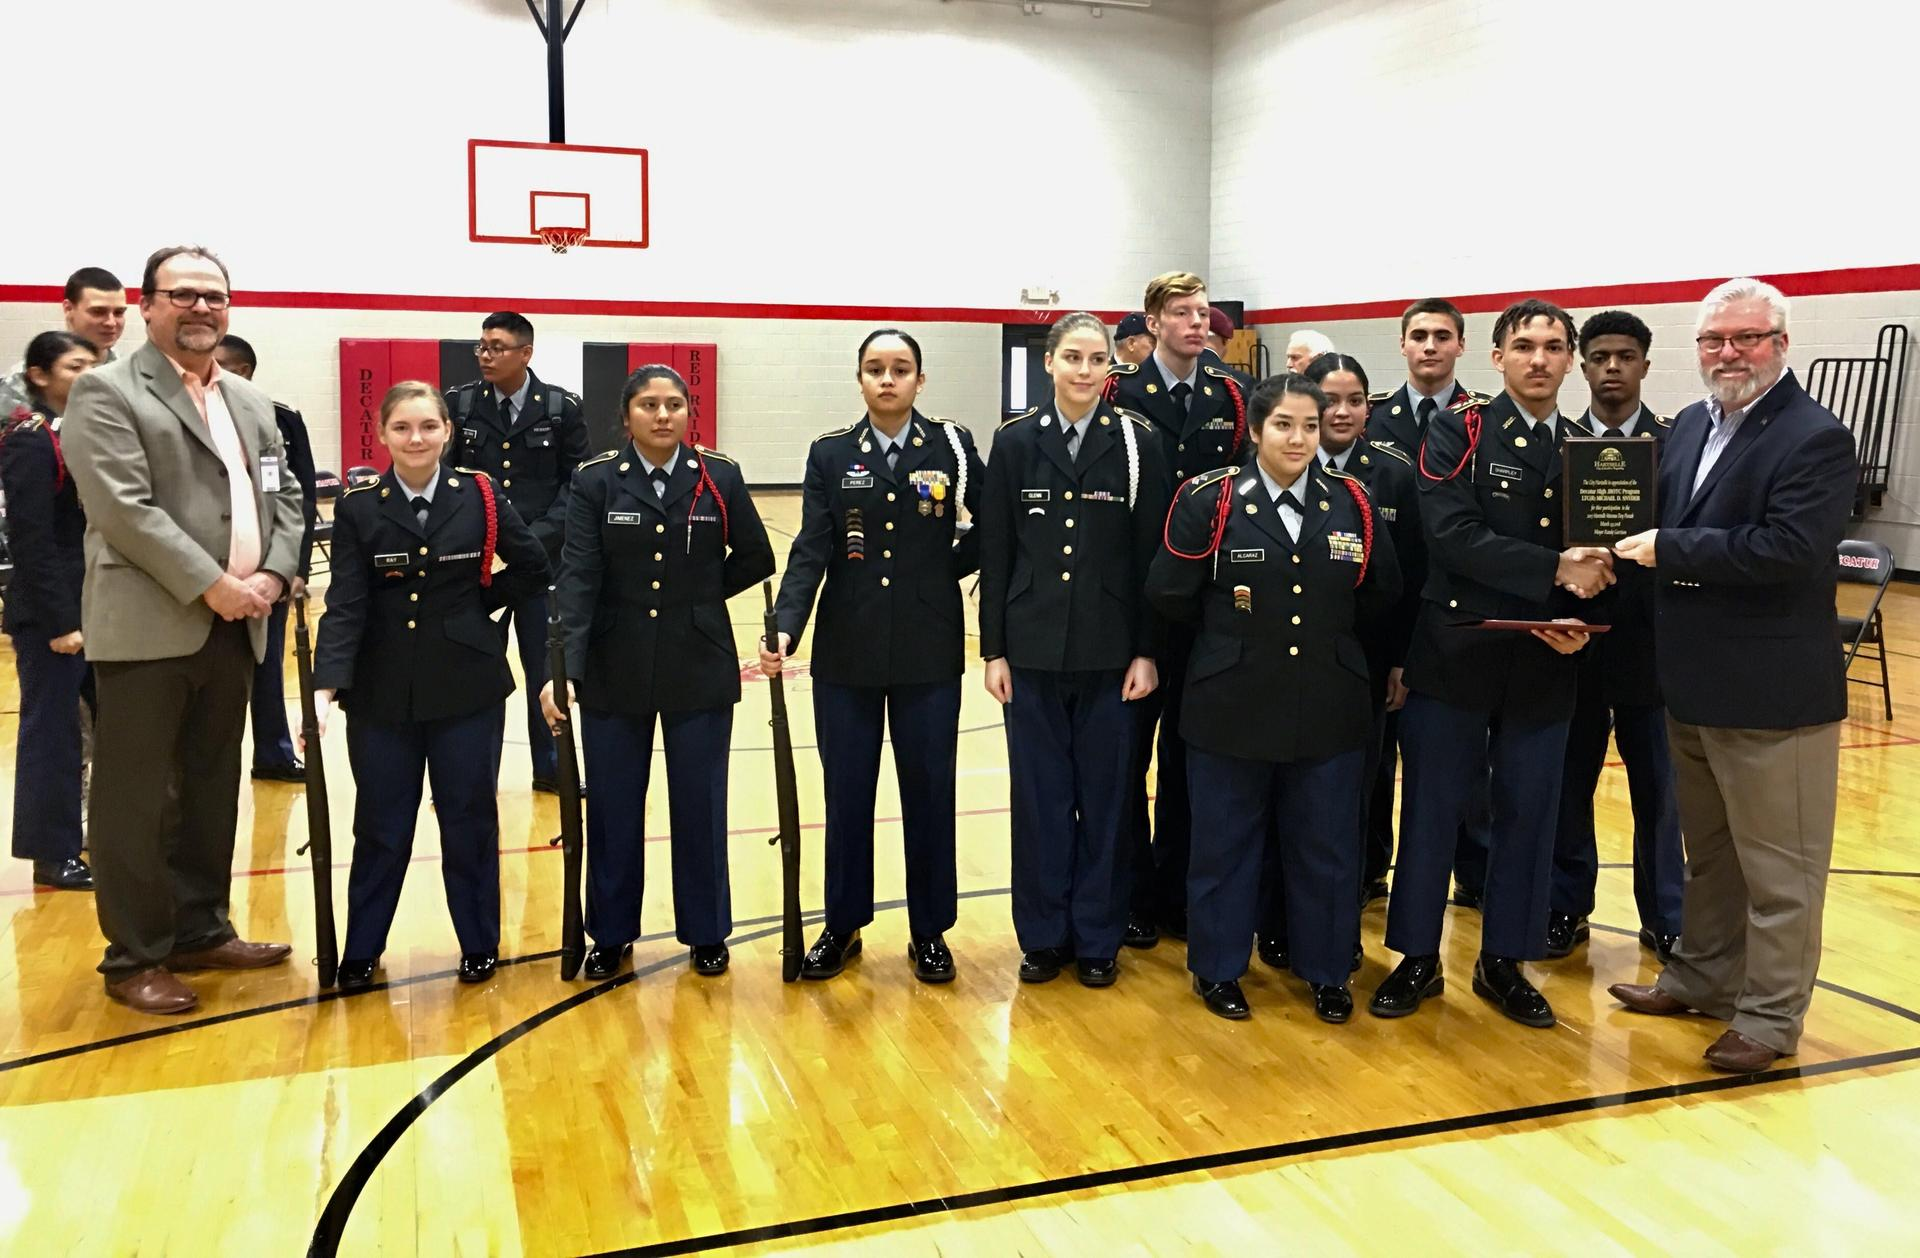 Mayor of Hartselle recognizes unit for Veterans Day Parade